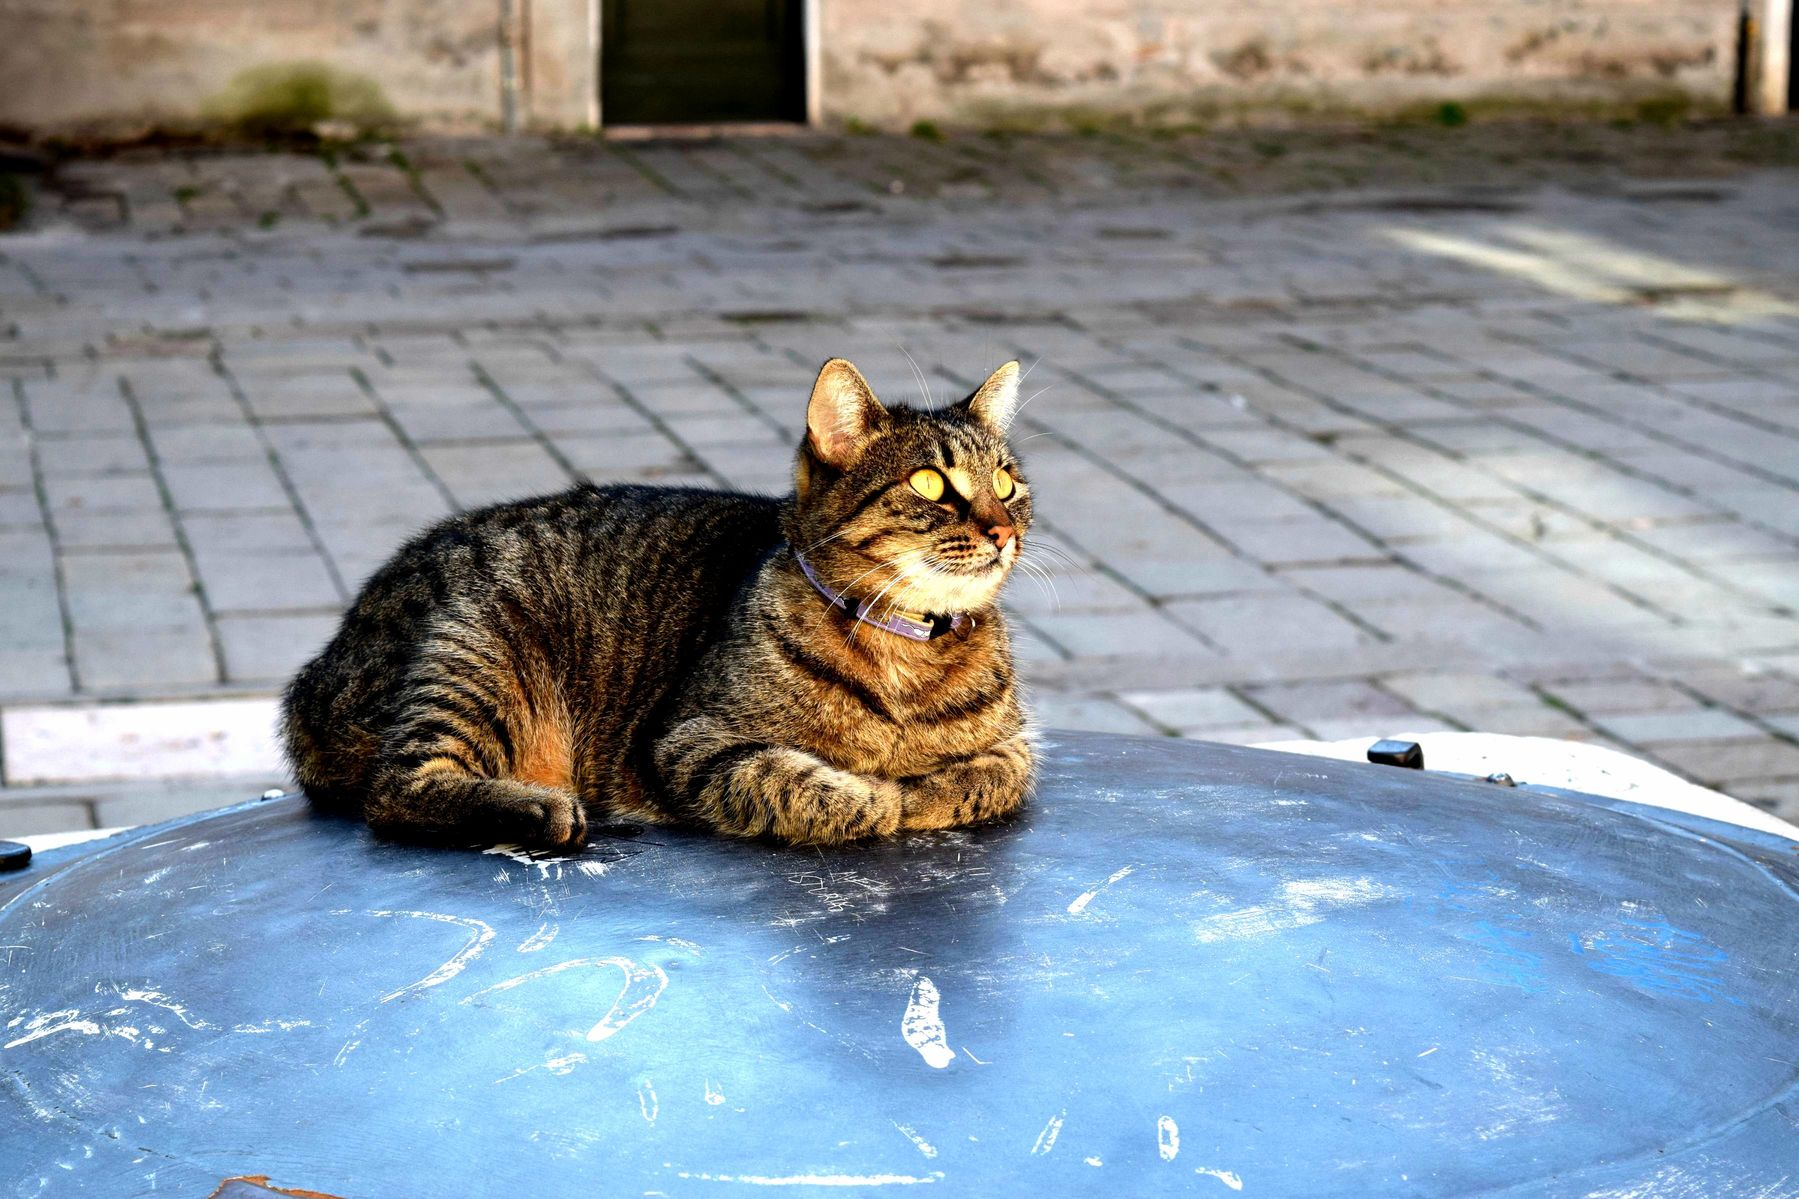 This inscrutable venetian cat we encountered.